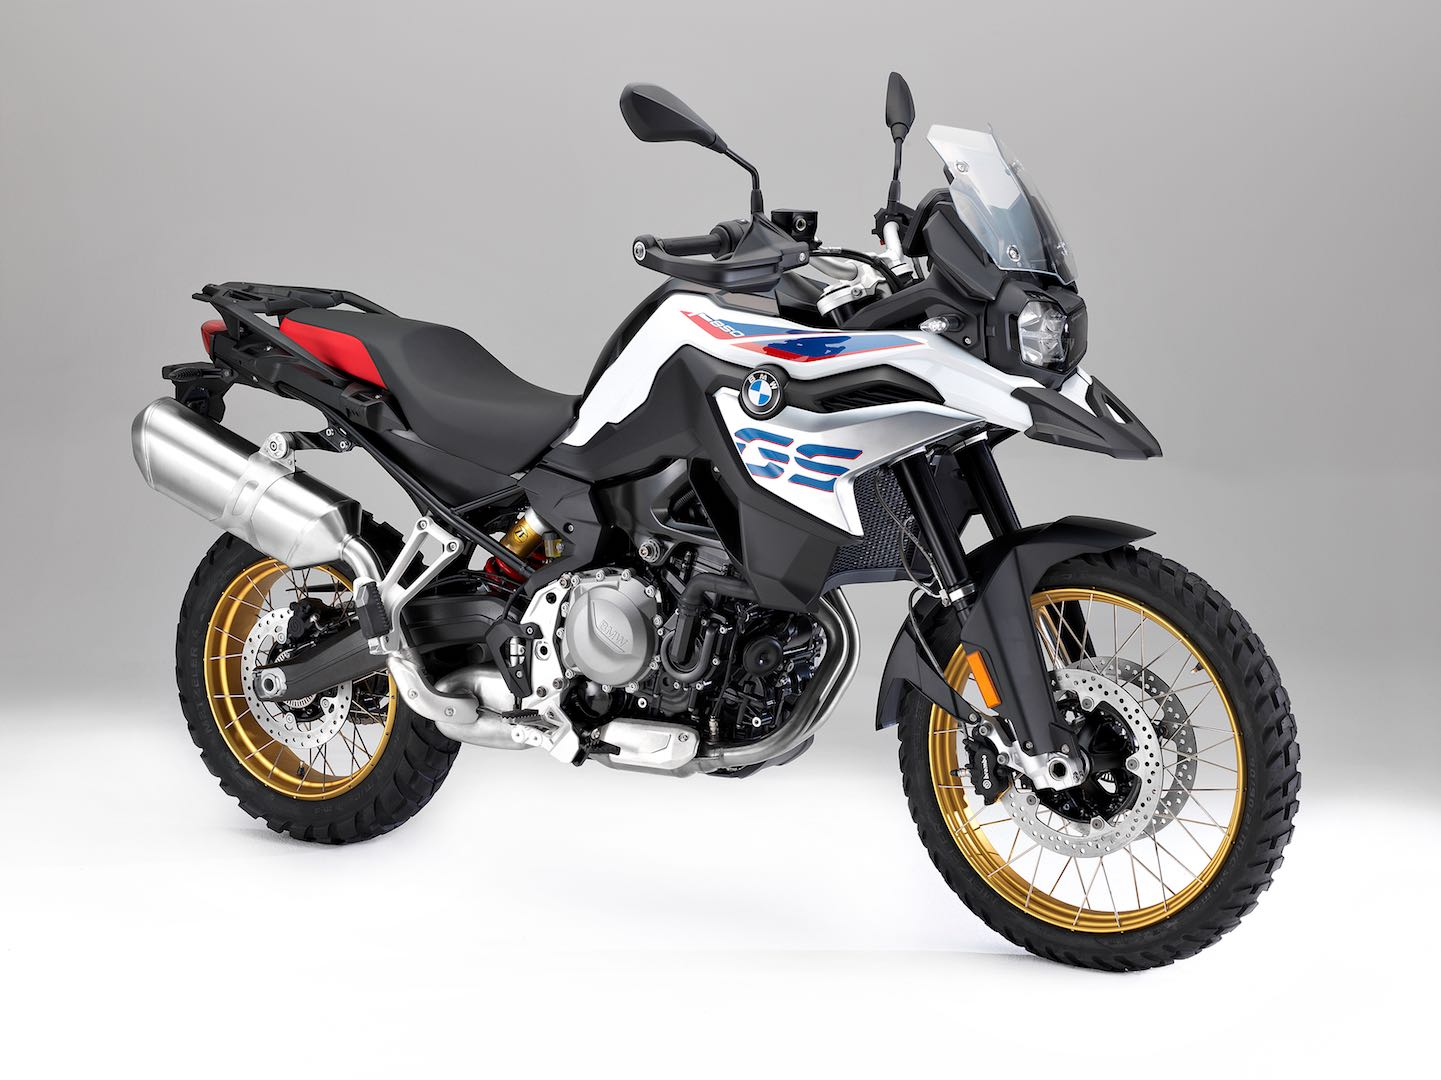 2018 bmw f 850 gs and f 750 gs first looks 12 fast facts for 11 1 8 x 13 g yamaha